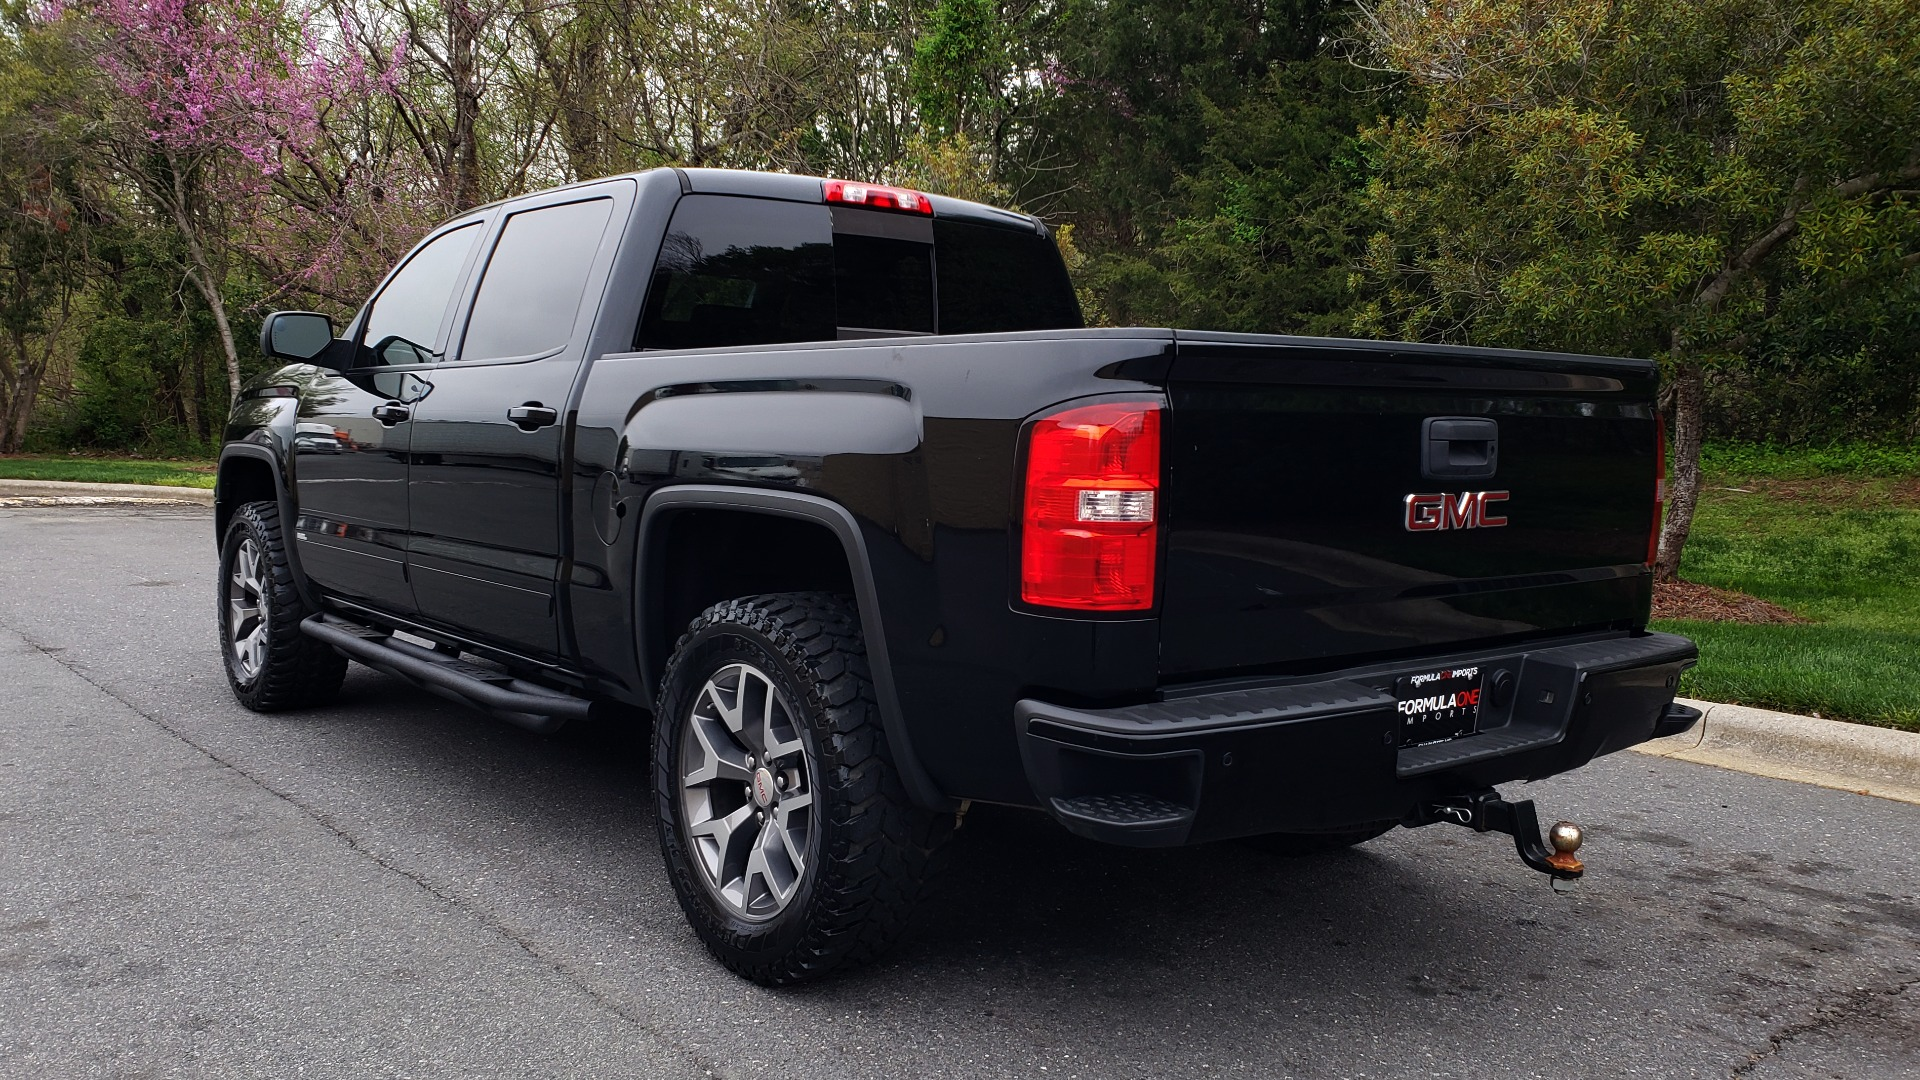 Used 2015 GMC SIERRA 1500 SLT 4WD CREW CAB / 6.2L V8 / NAV / BOSE / REARVIEW for sale Sold at Formula Imports in Charlotte NC 28227 3